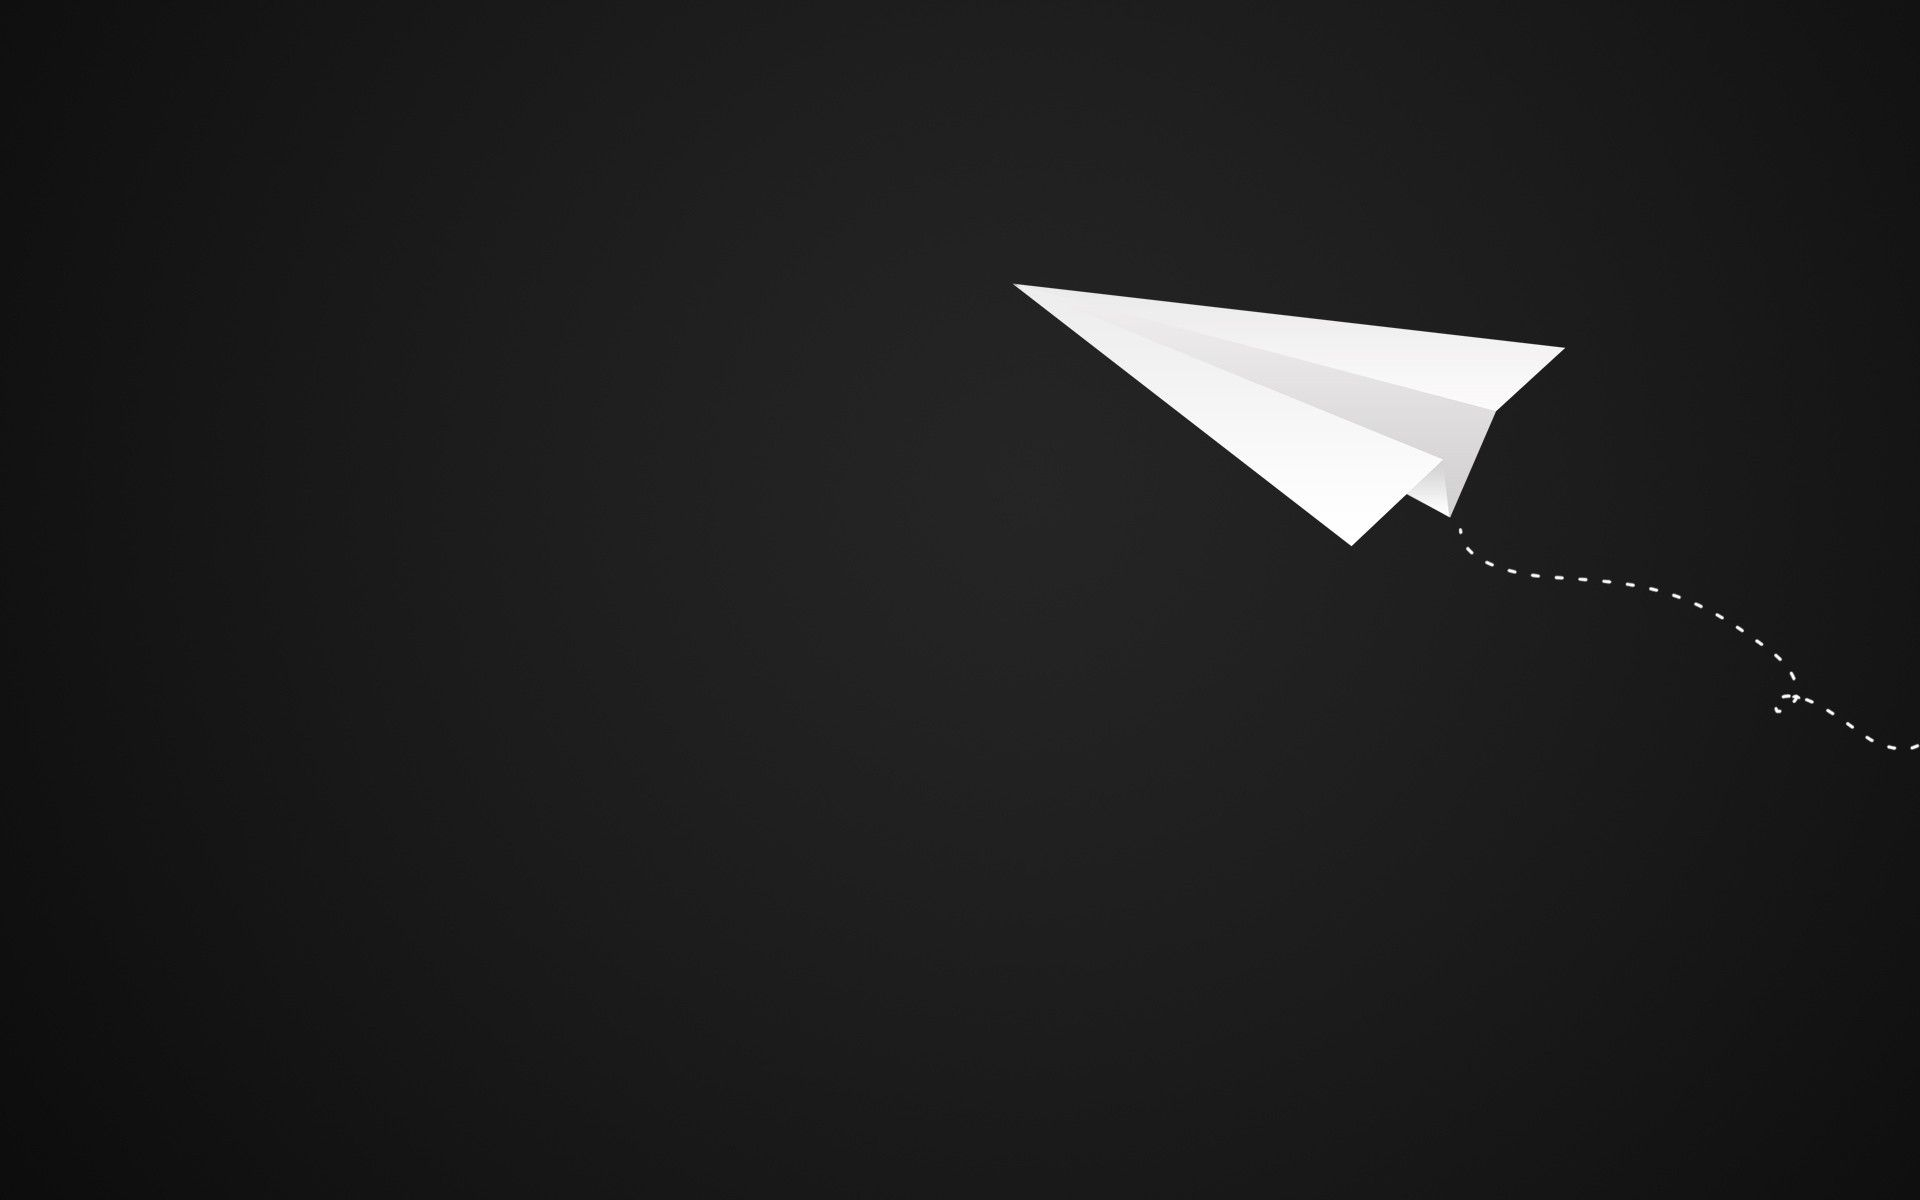 minimalistic monochrome paper plane / 1920x1200 wallpaper | the